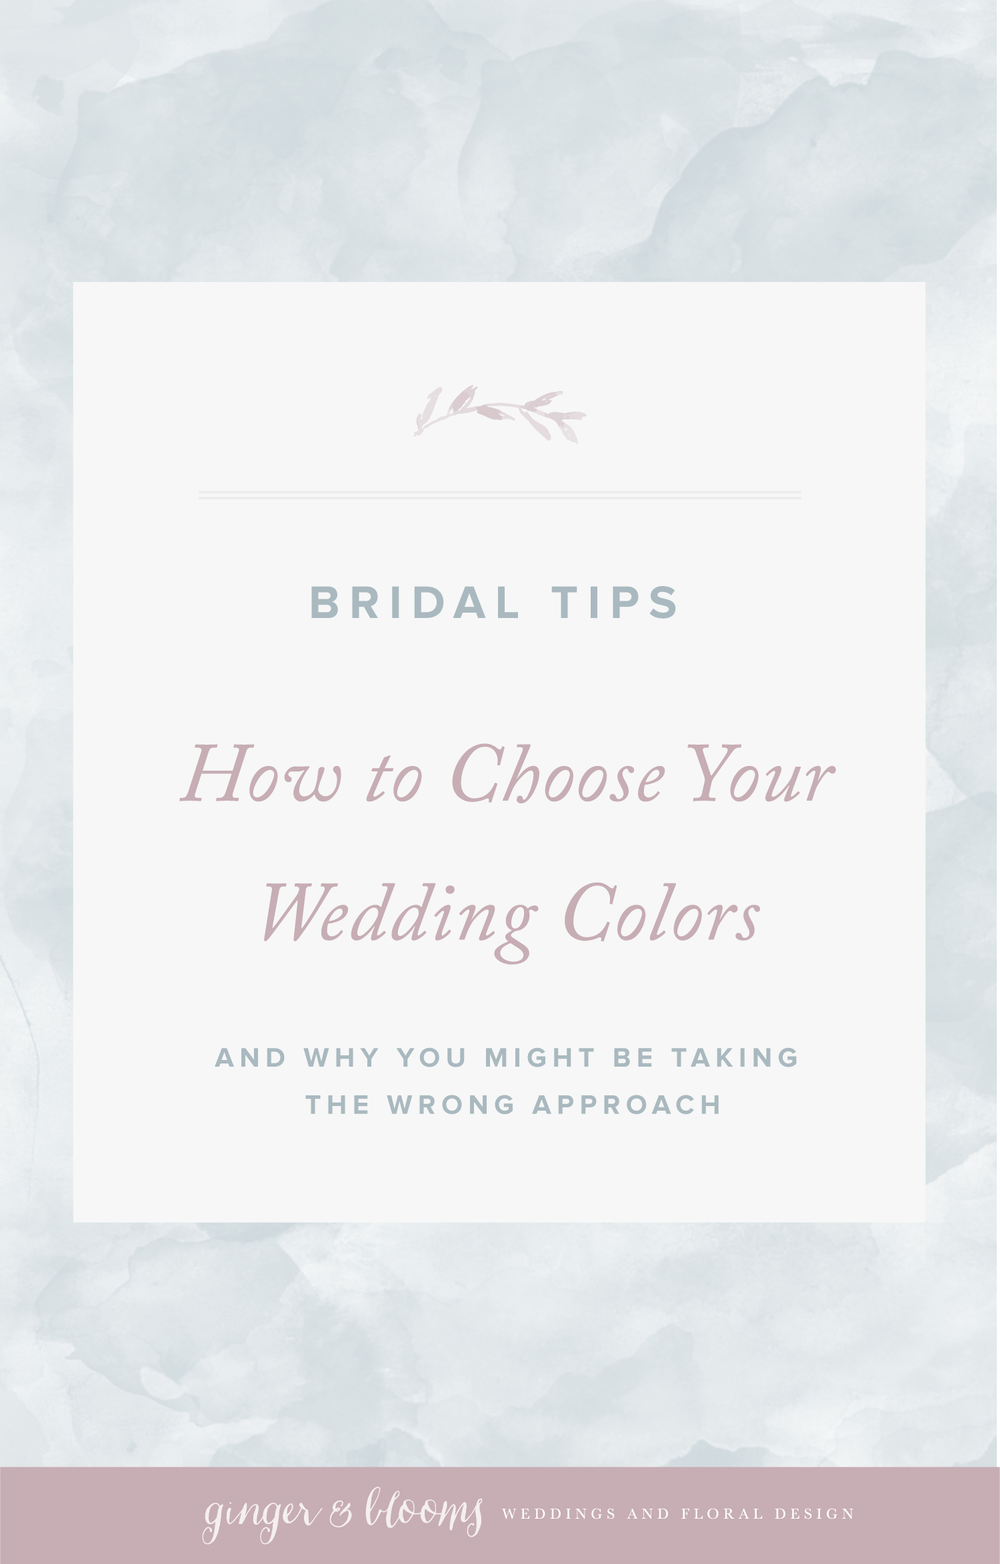 Ginger and Blooms | Mid Atlantic Wedding Planning and Florals | How to Choose Your Wedding Colors